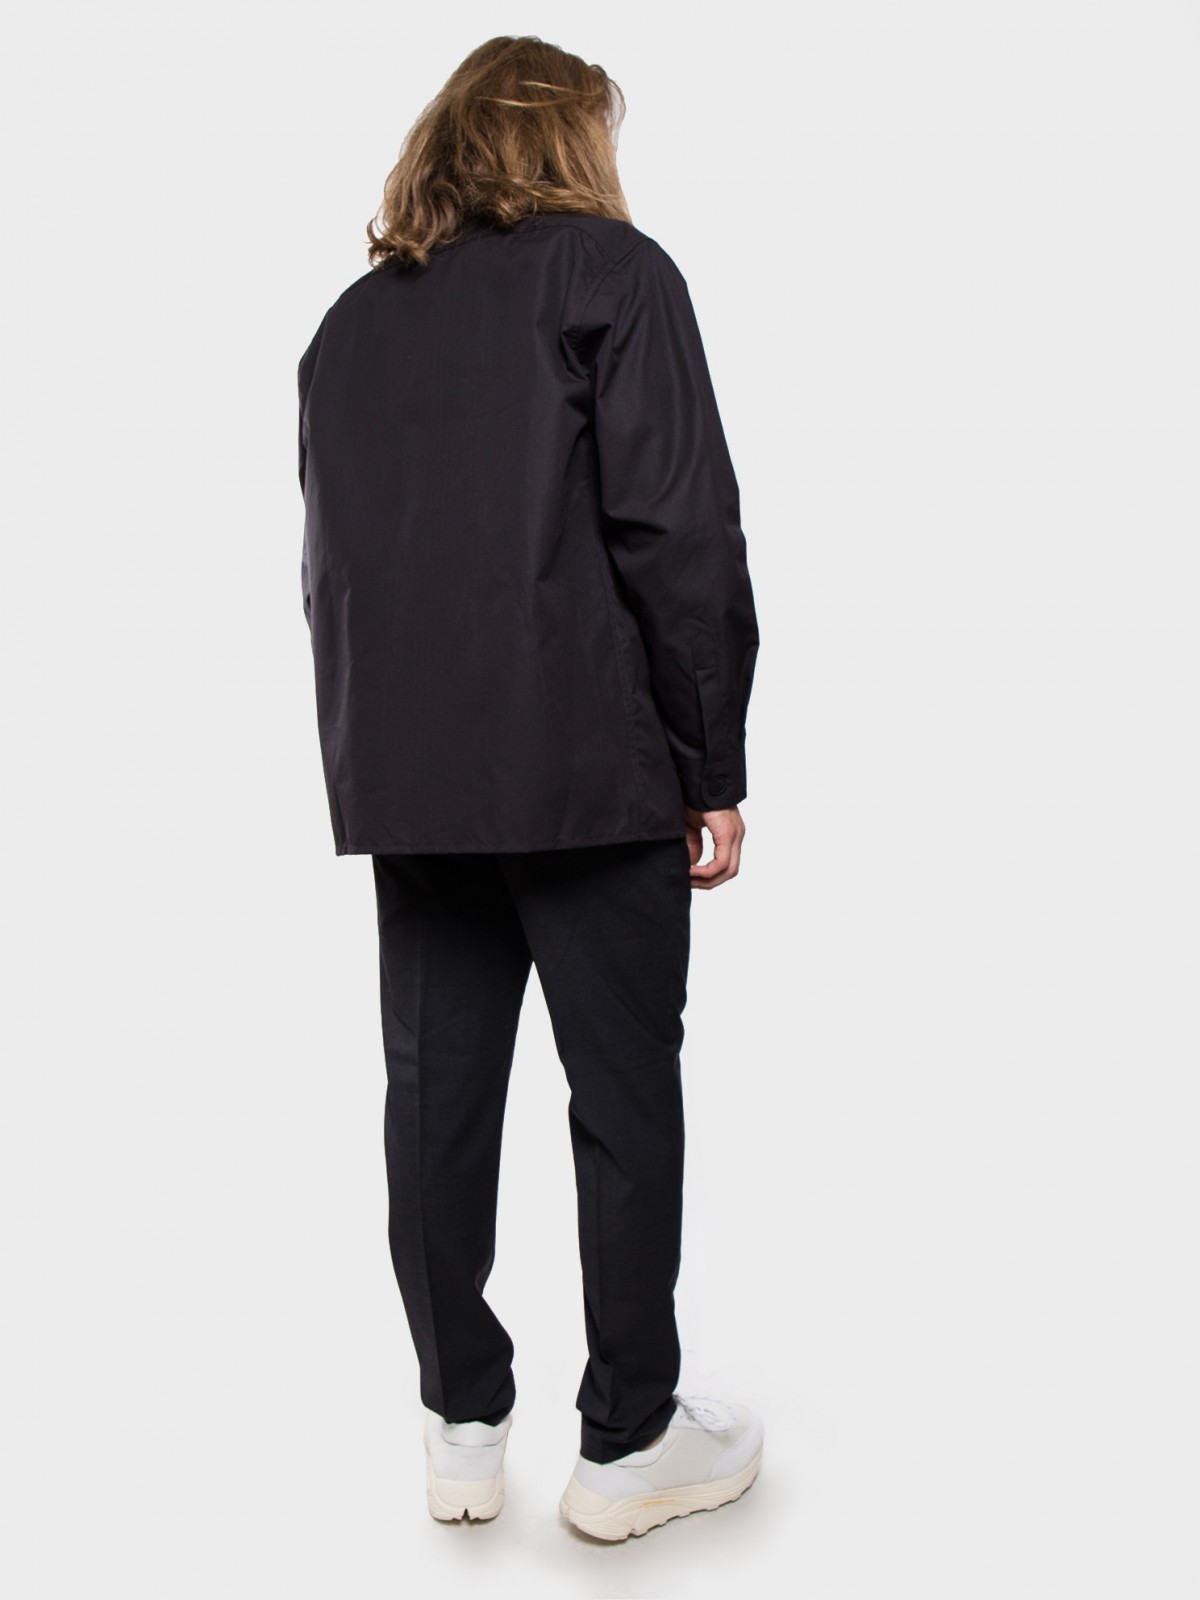 Schnayderman's Overshirt M65 Ripstop in Black